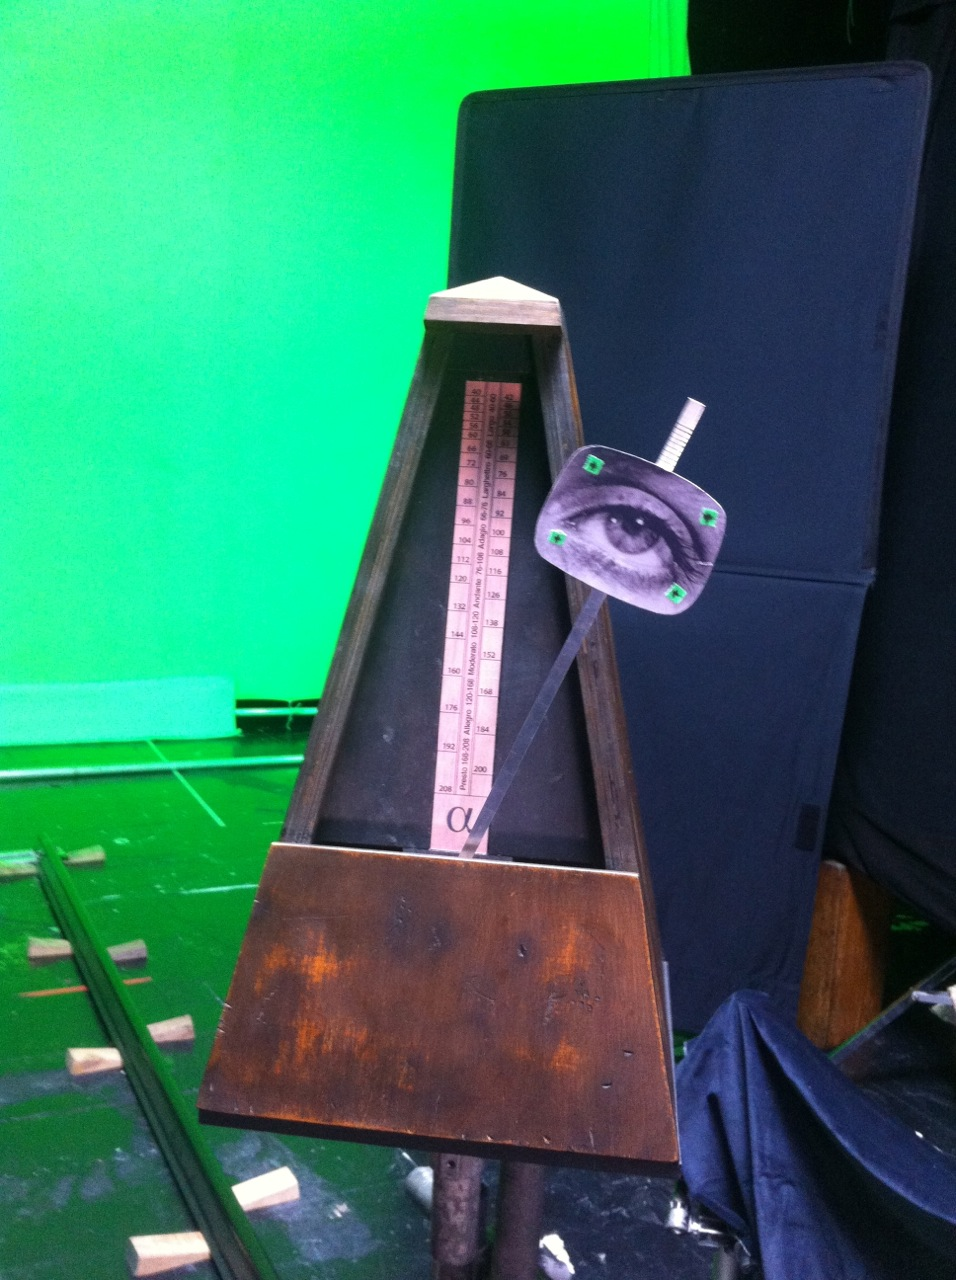 oversized metronome prop on set